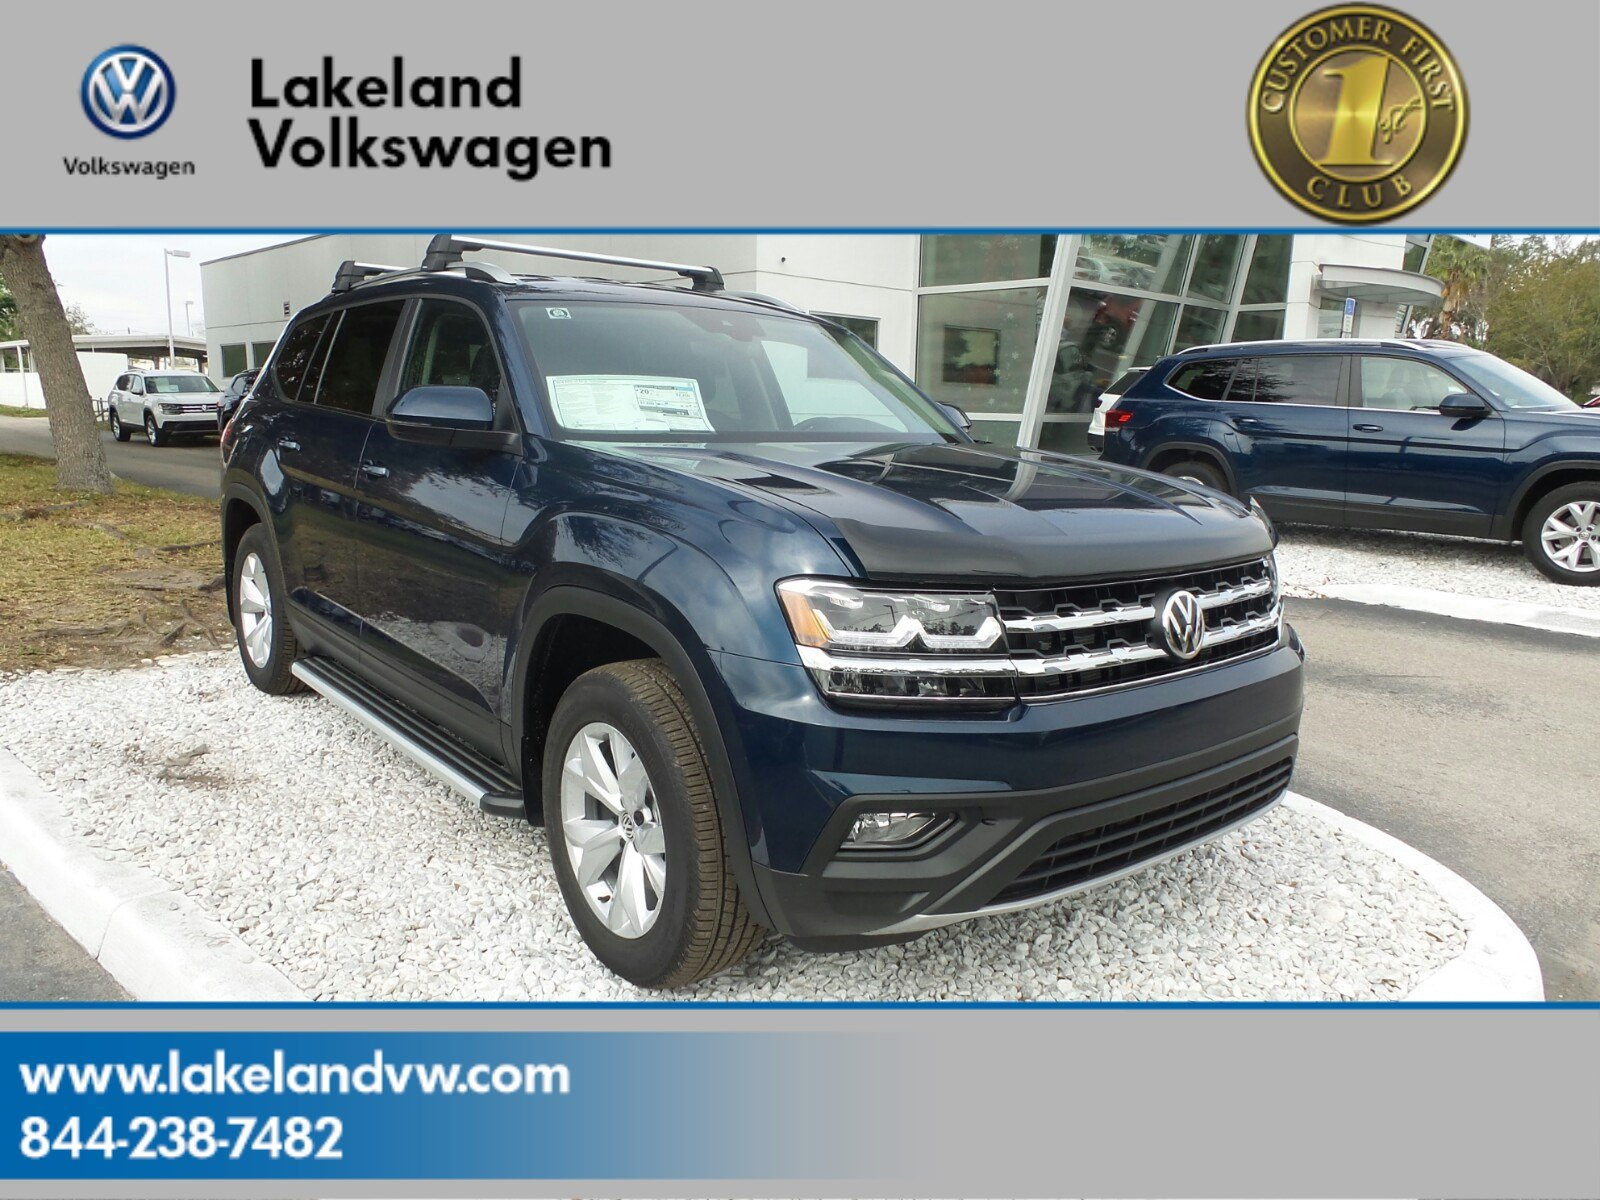 sale volkswagen and cars fl for img used at in jetta dealers lakeland new